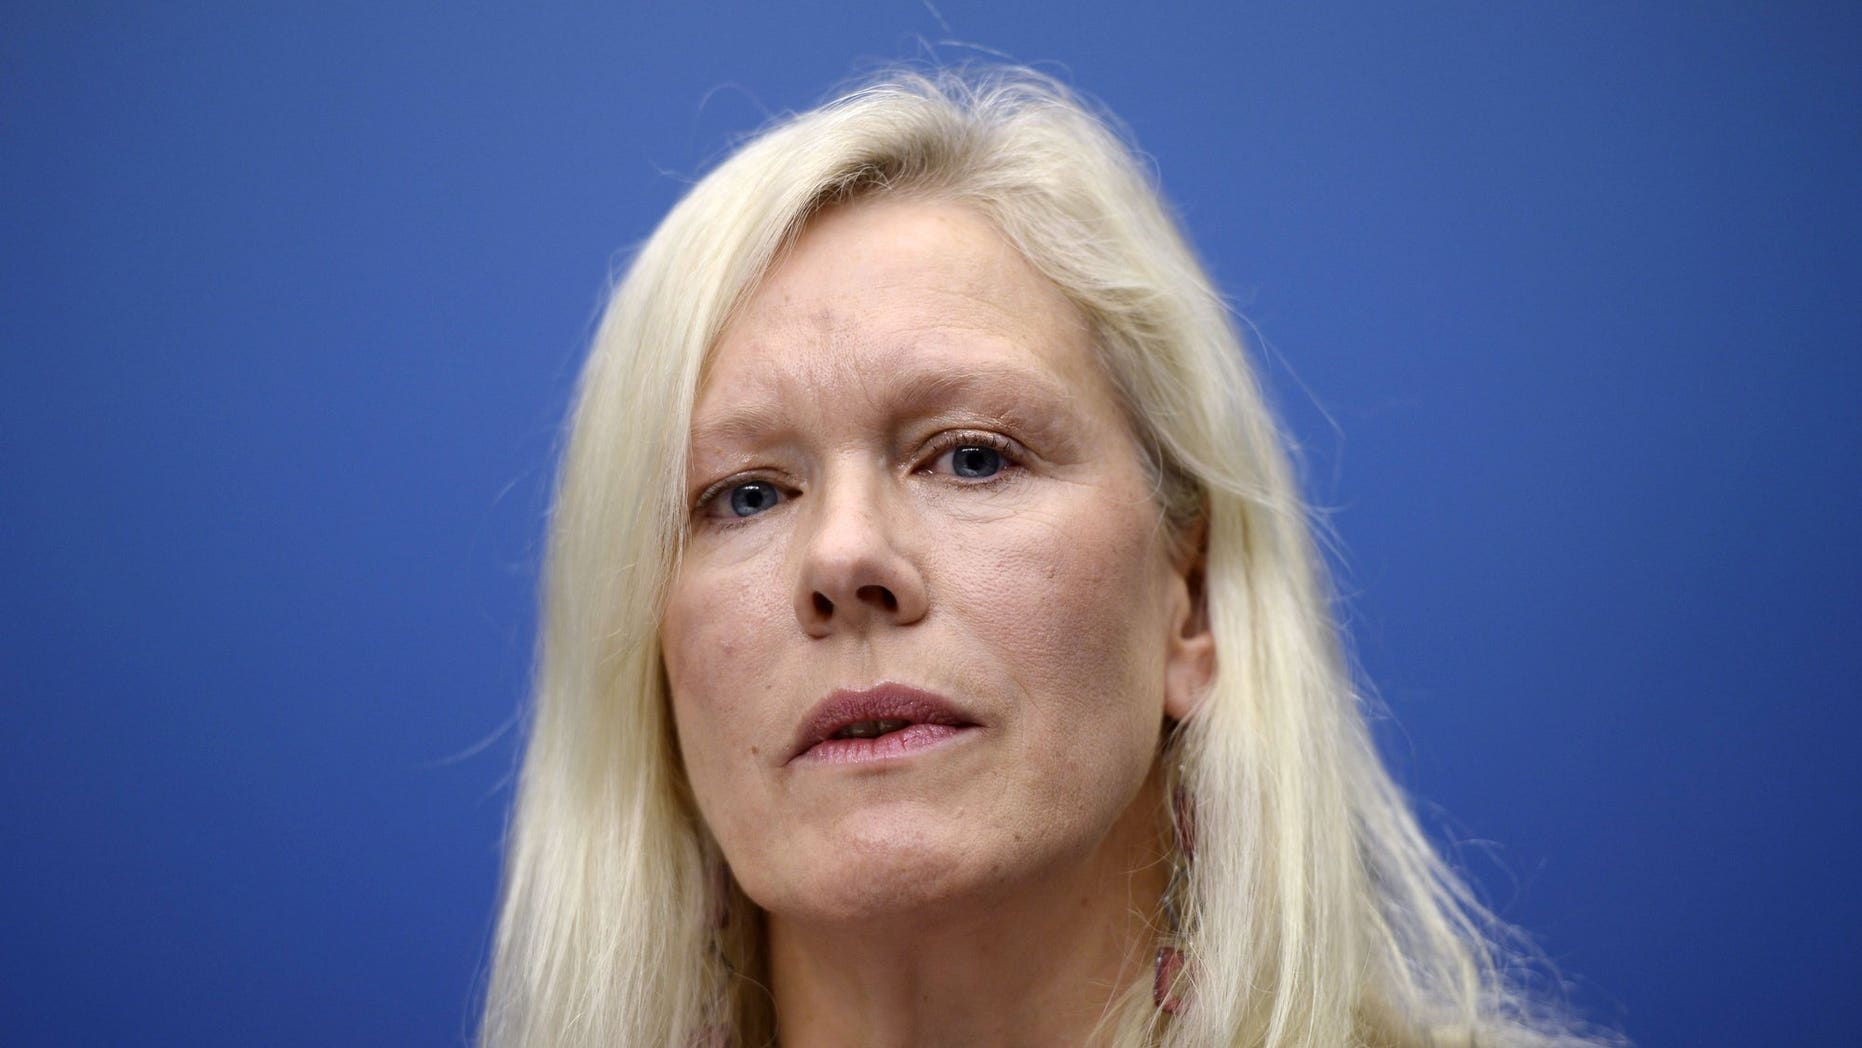 Anna Lindstedt, Sweden's ambassador to China who is under internal investigation, the embassy said Thursday Feb. 14, 2019, after she set up meetings between the daughter of a detained Swedish publisher and two businessmen that appeared to have gone awry.